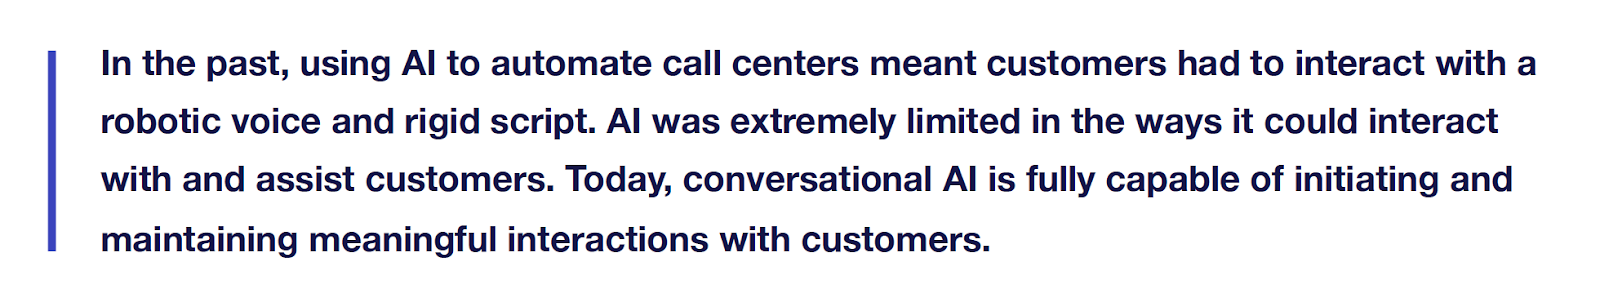 Excerpt from The Ultimate Guide to Implementing Conversational AI Within Your Organization